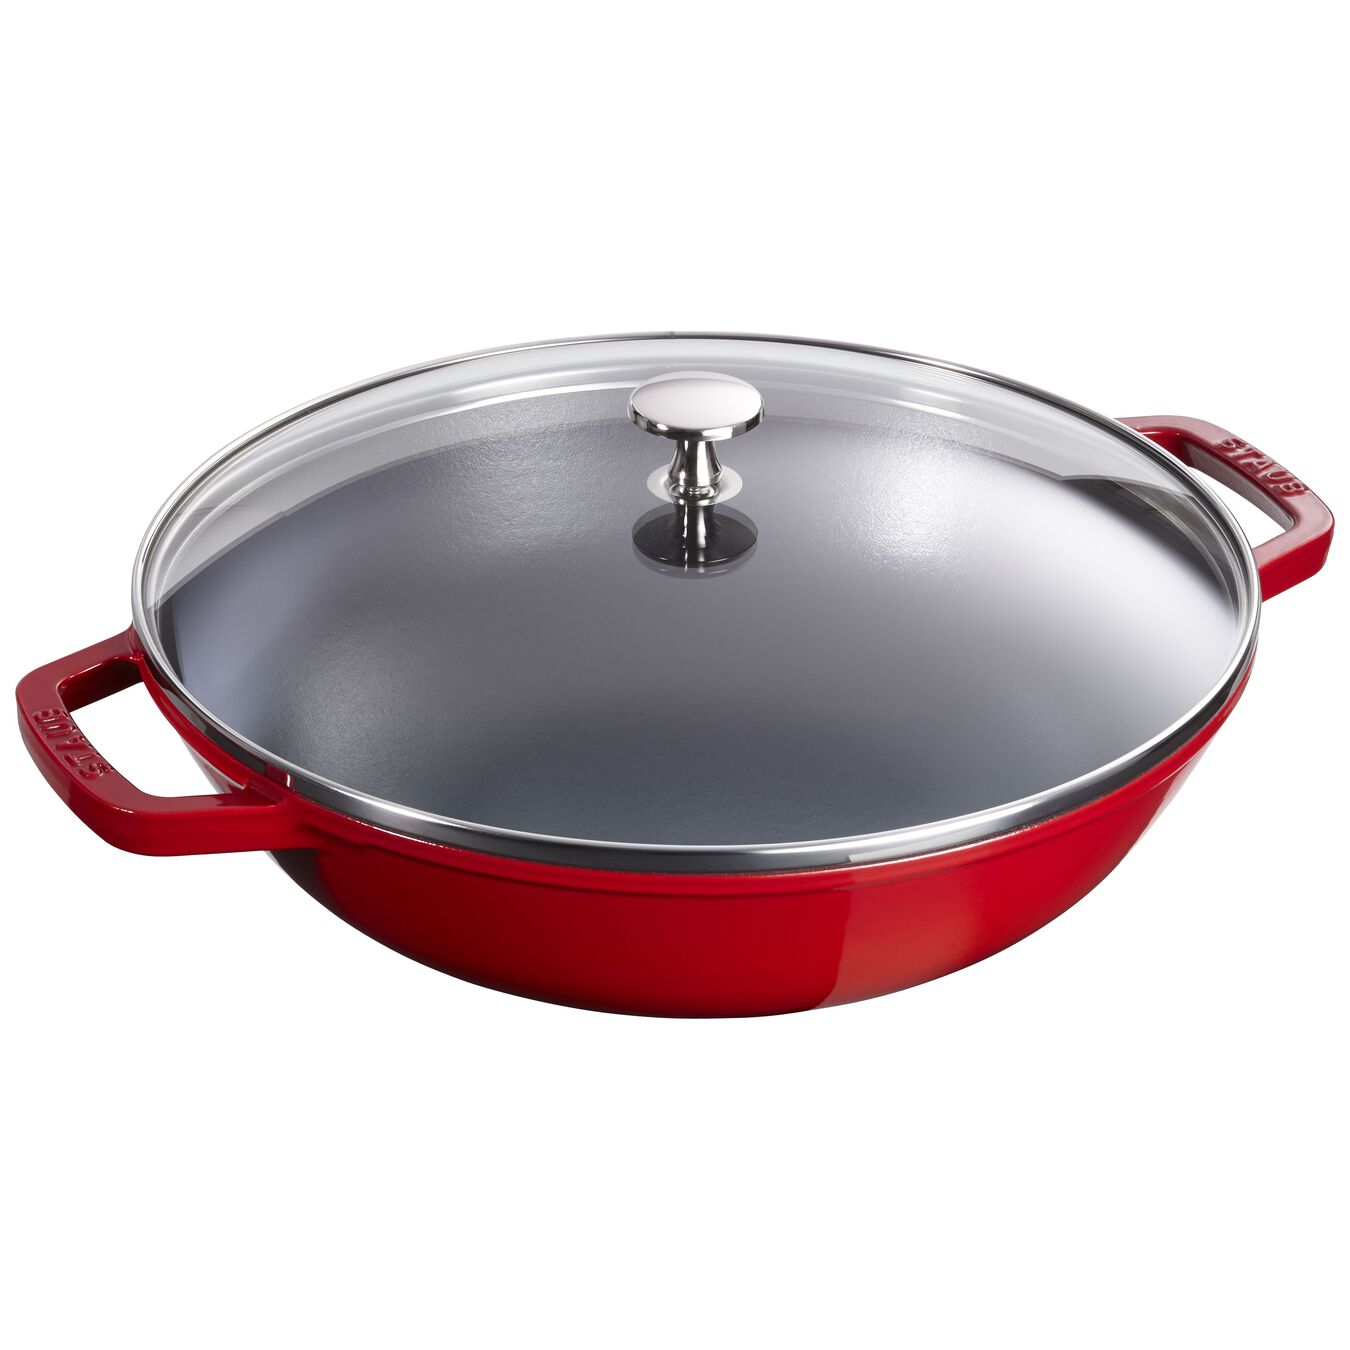 4.5-qt Perfect Pan - Cherry,,large 1